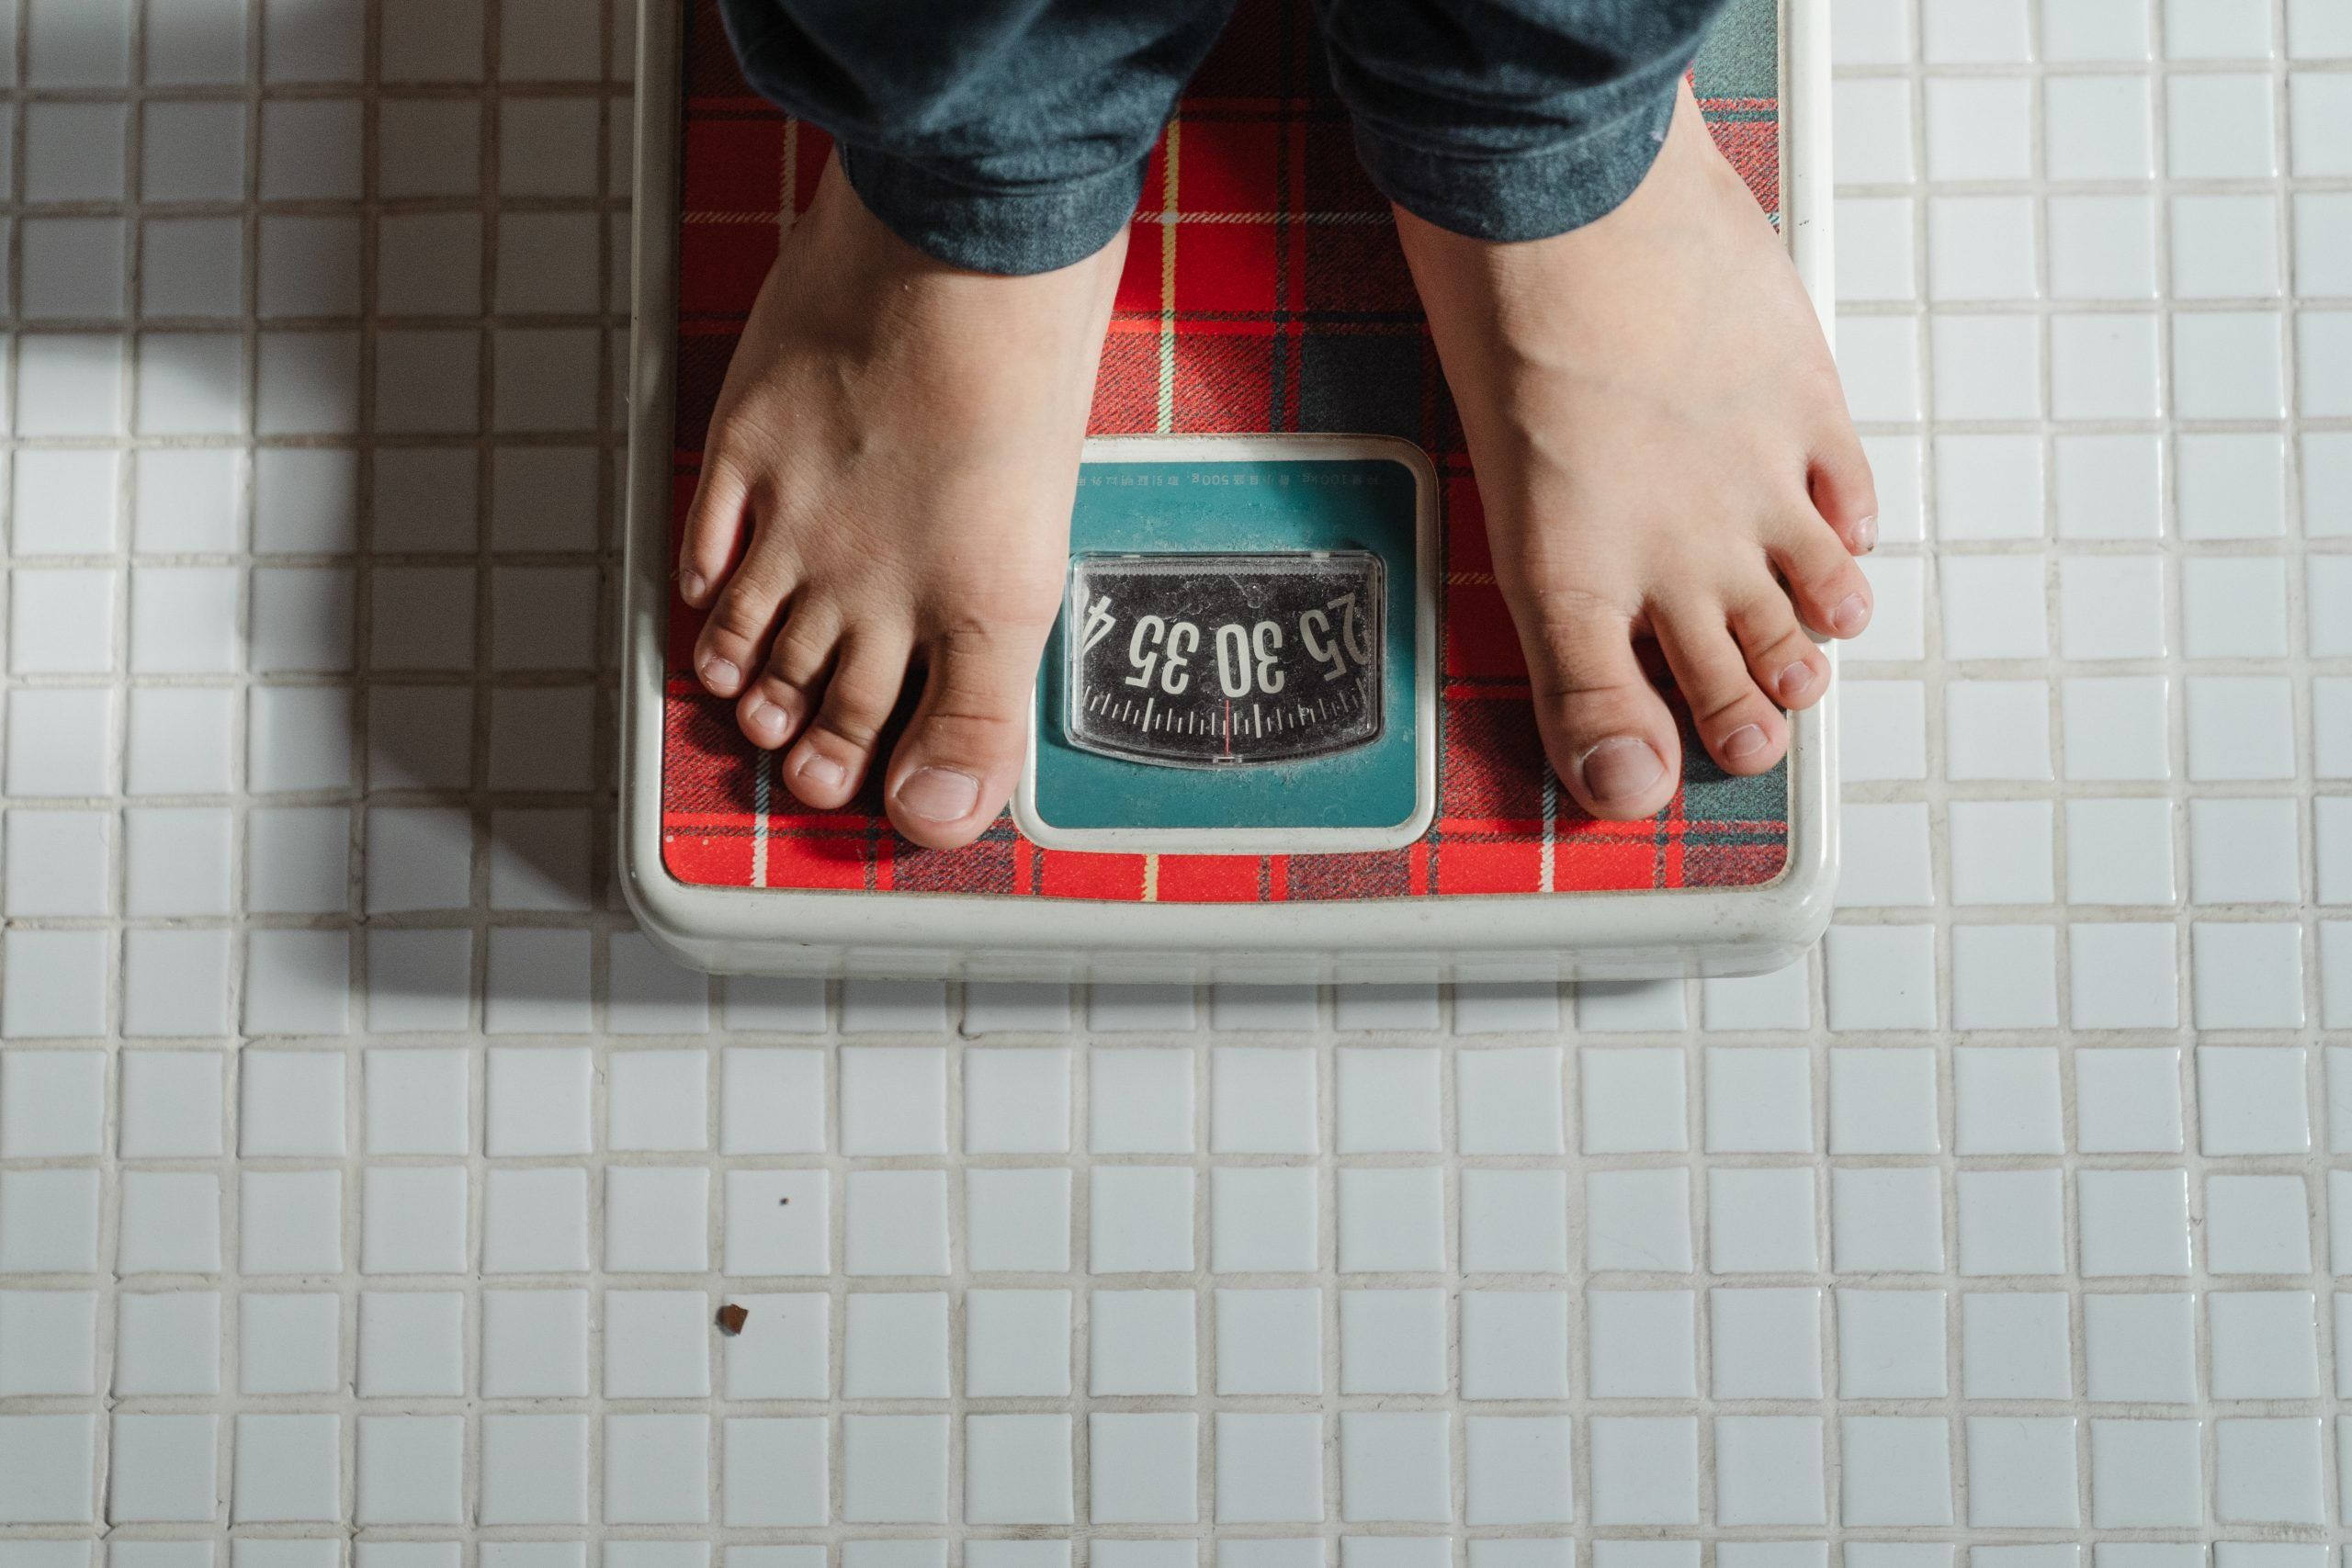 How to maintain weight